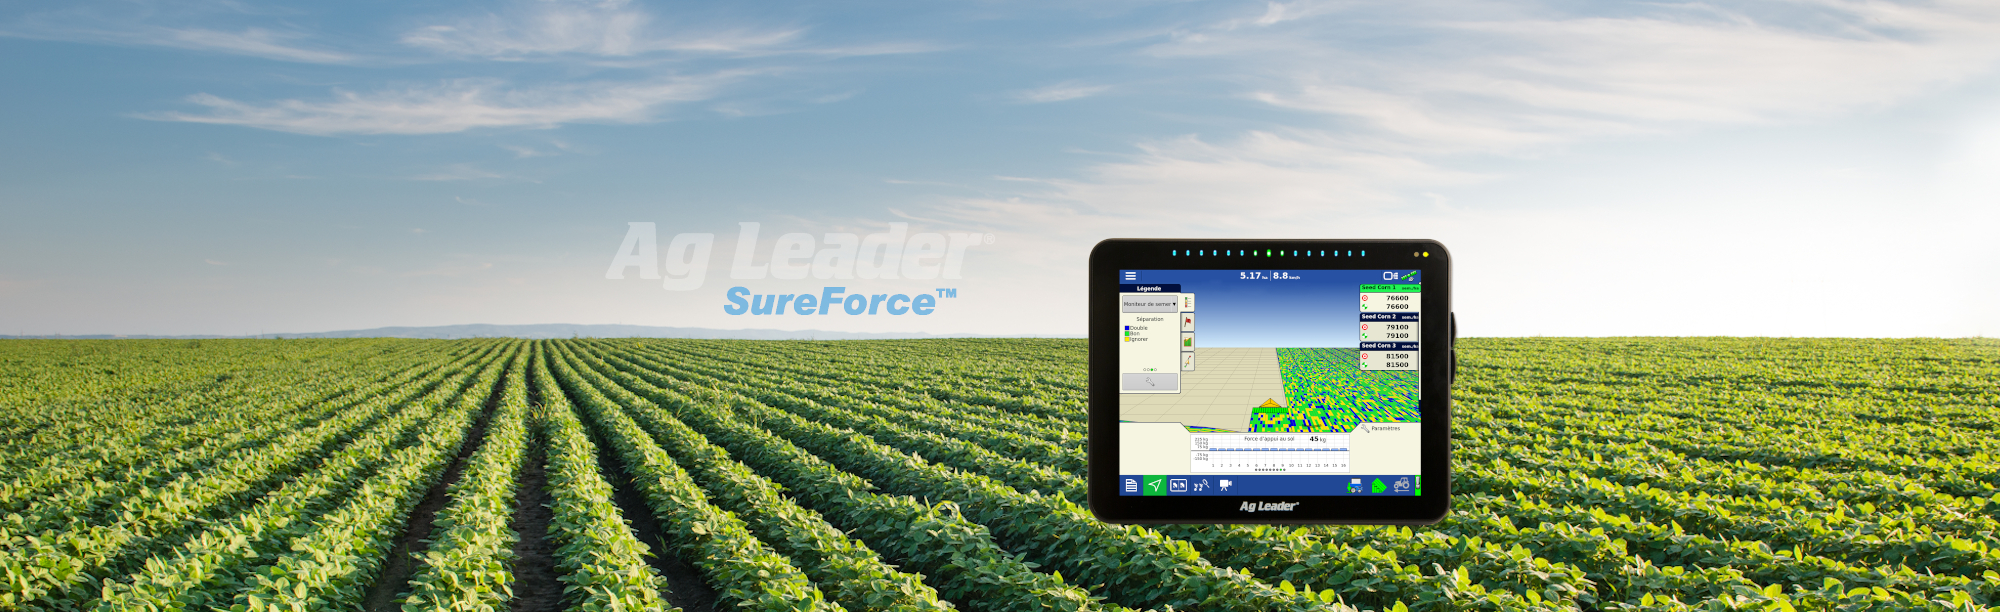 Sureforce_slider_fr